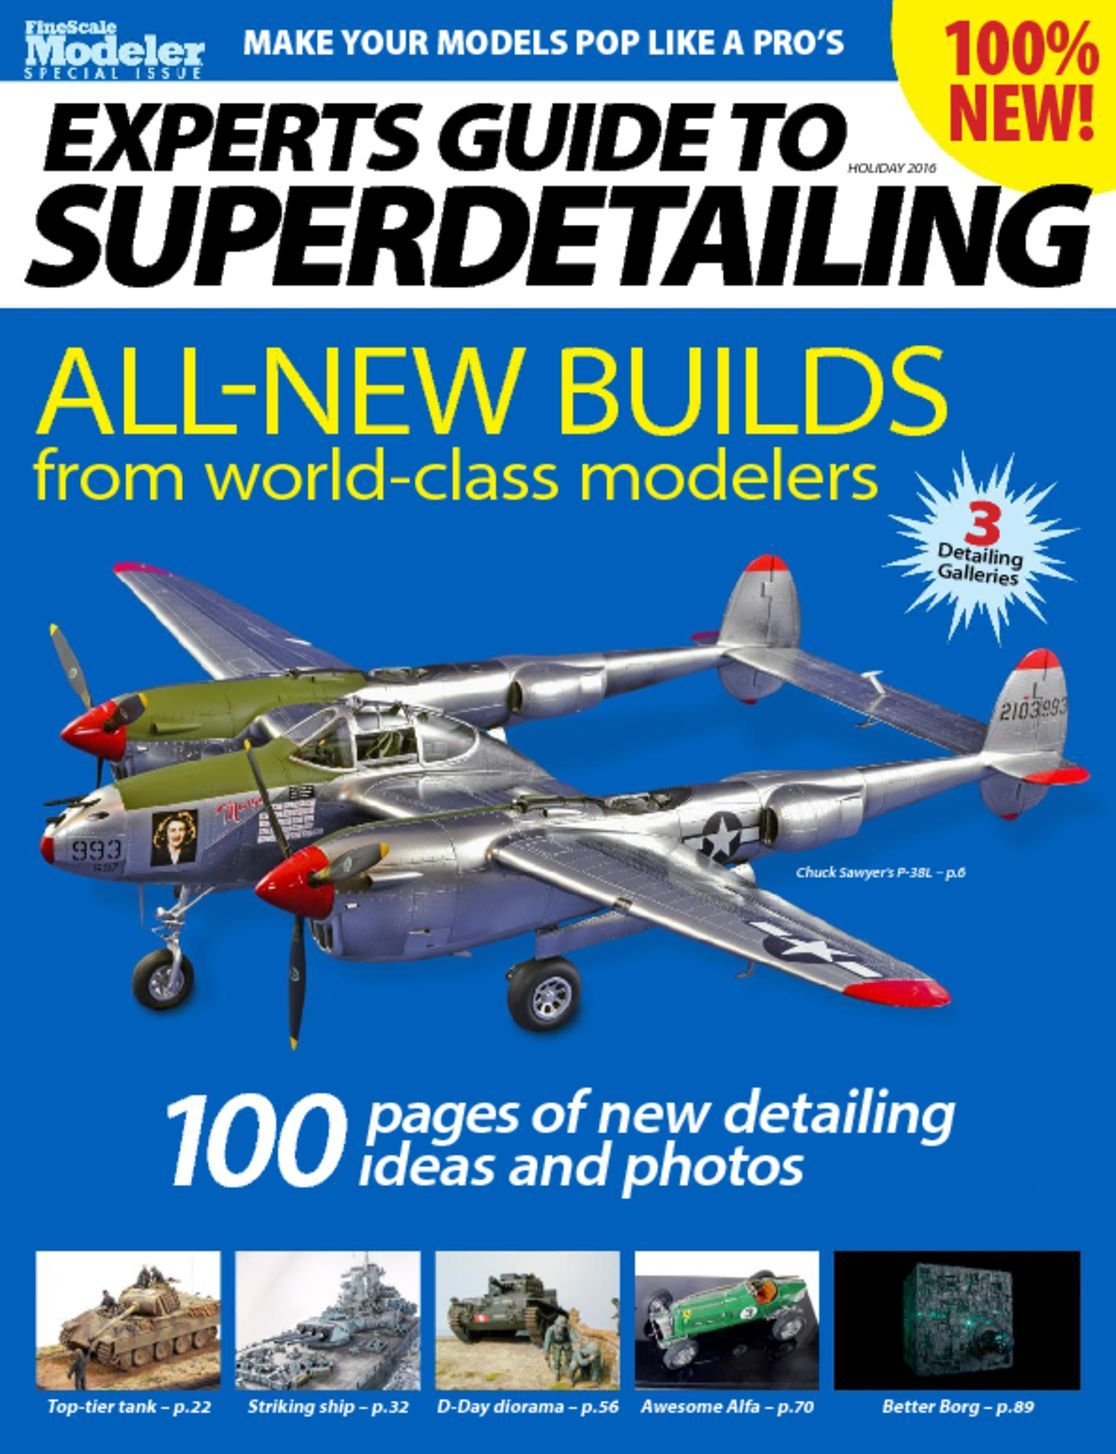 Experts Guide to Superdetailing Digital